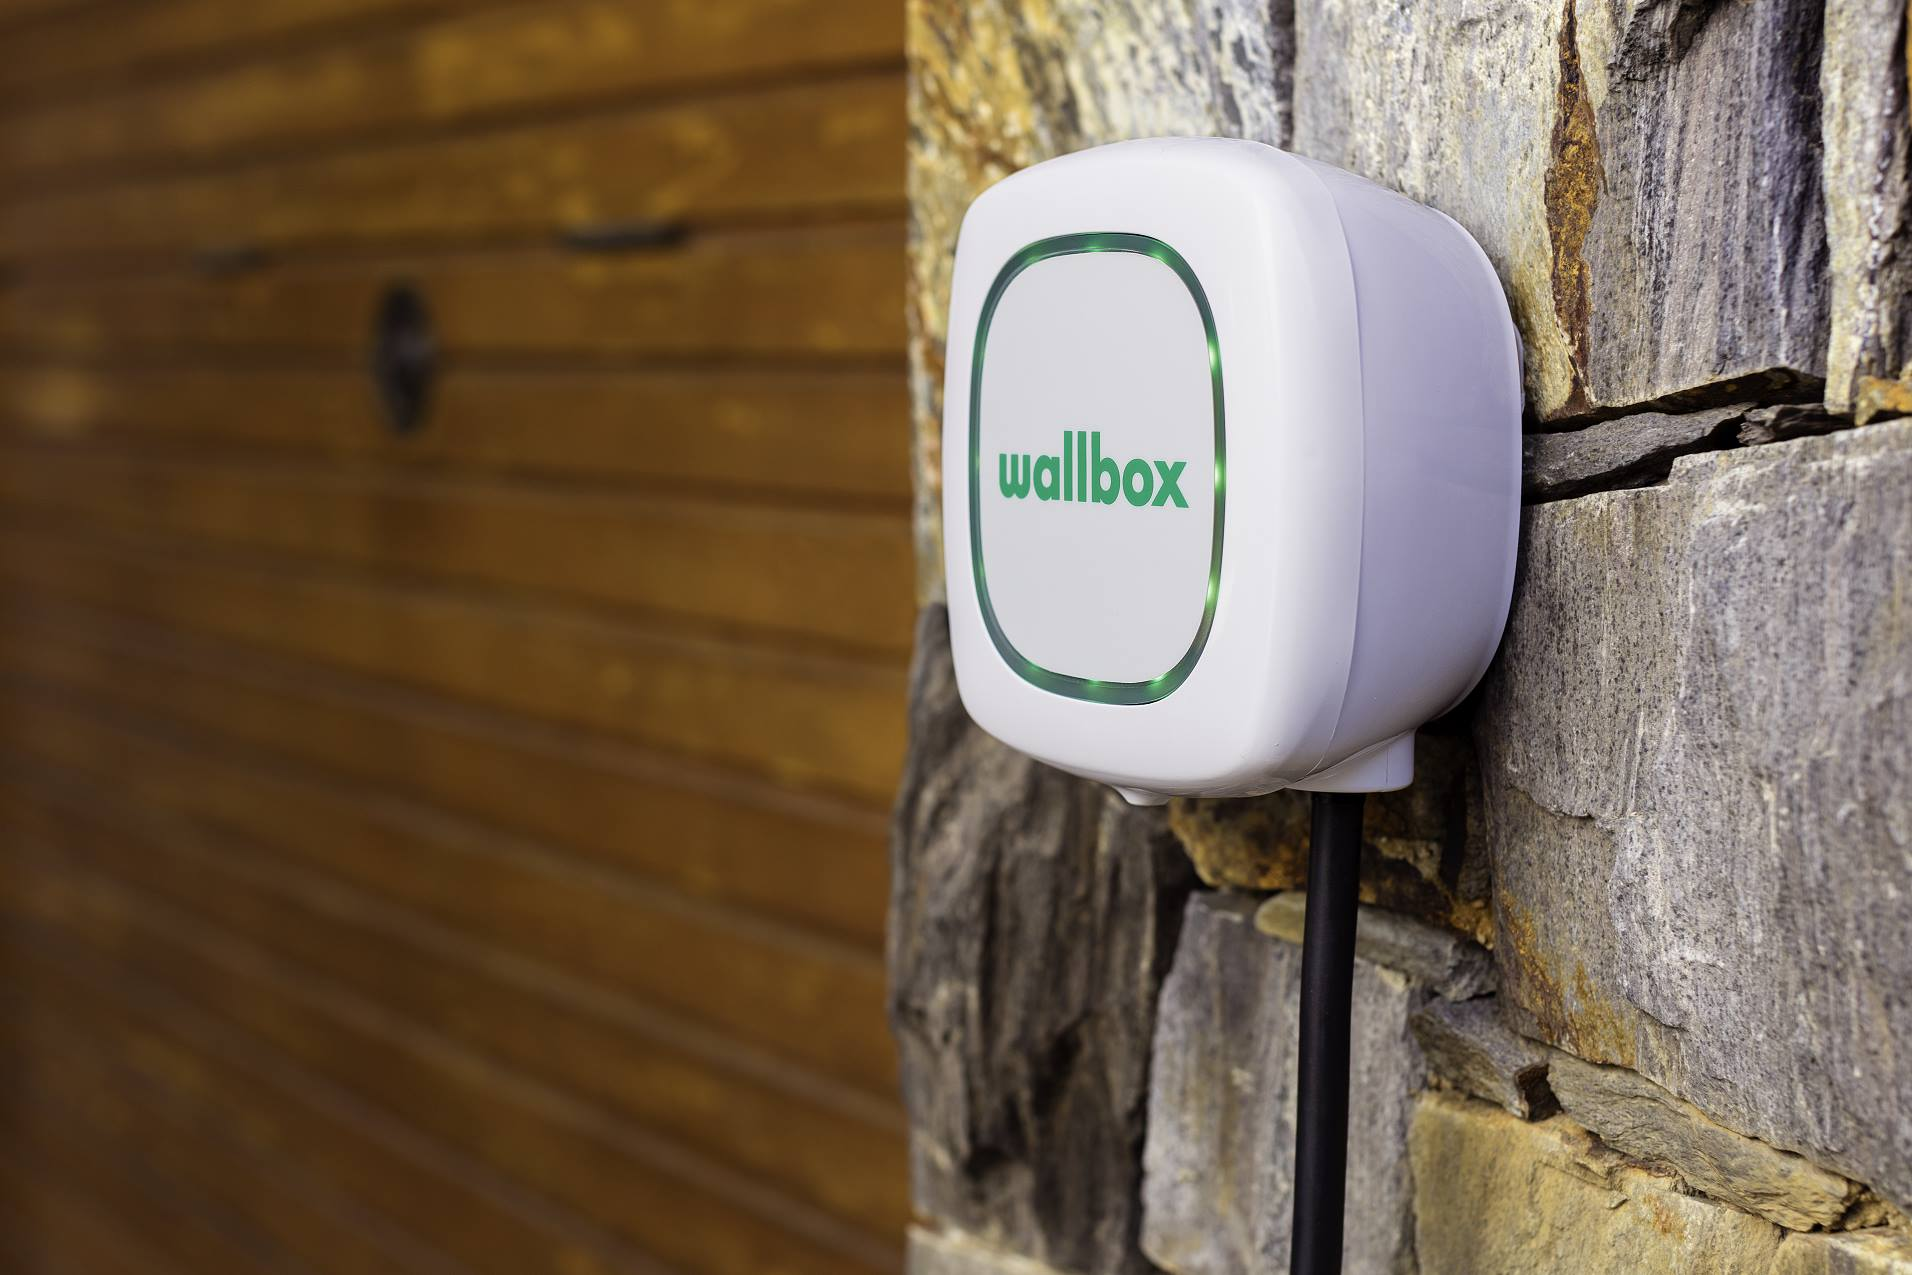 Wallbox installatie